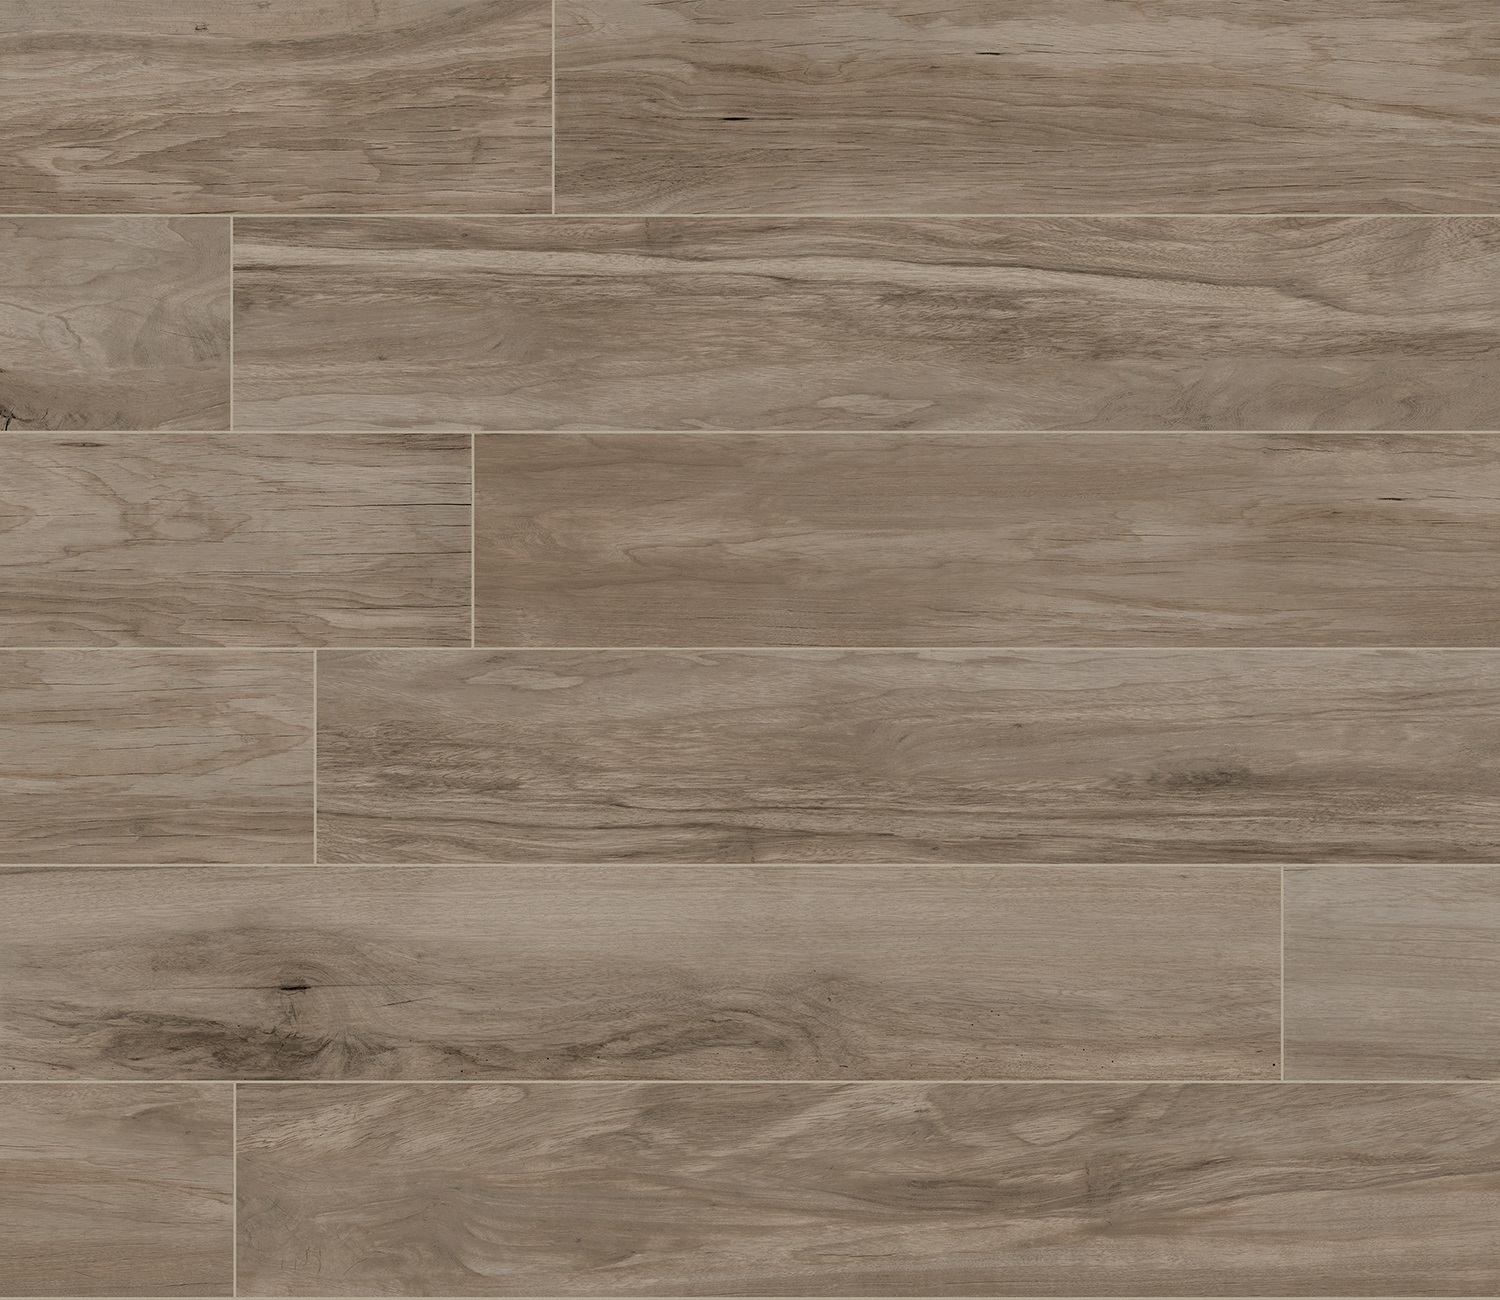 Wood Finish Floor Tiles Of Fincibec Group Floor Wall Tiles